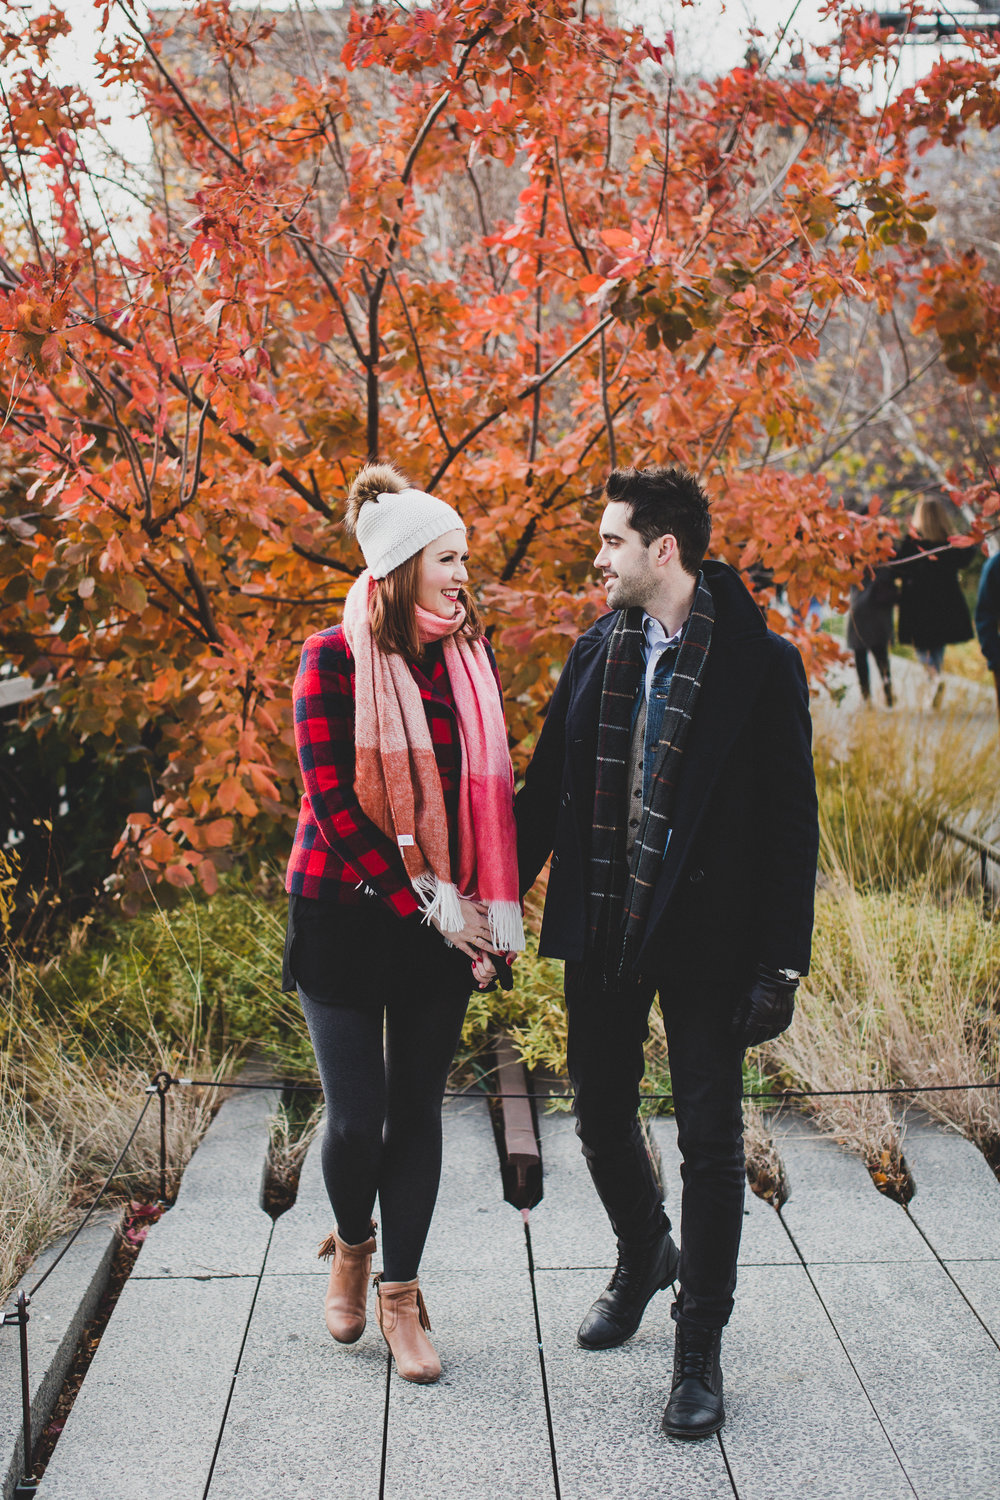 The-High-Line-Manhattan-Fall-Engagement-Photos-by-Elvira-Kalviste-Photography-3.jpg